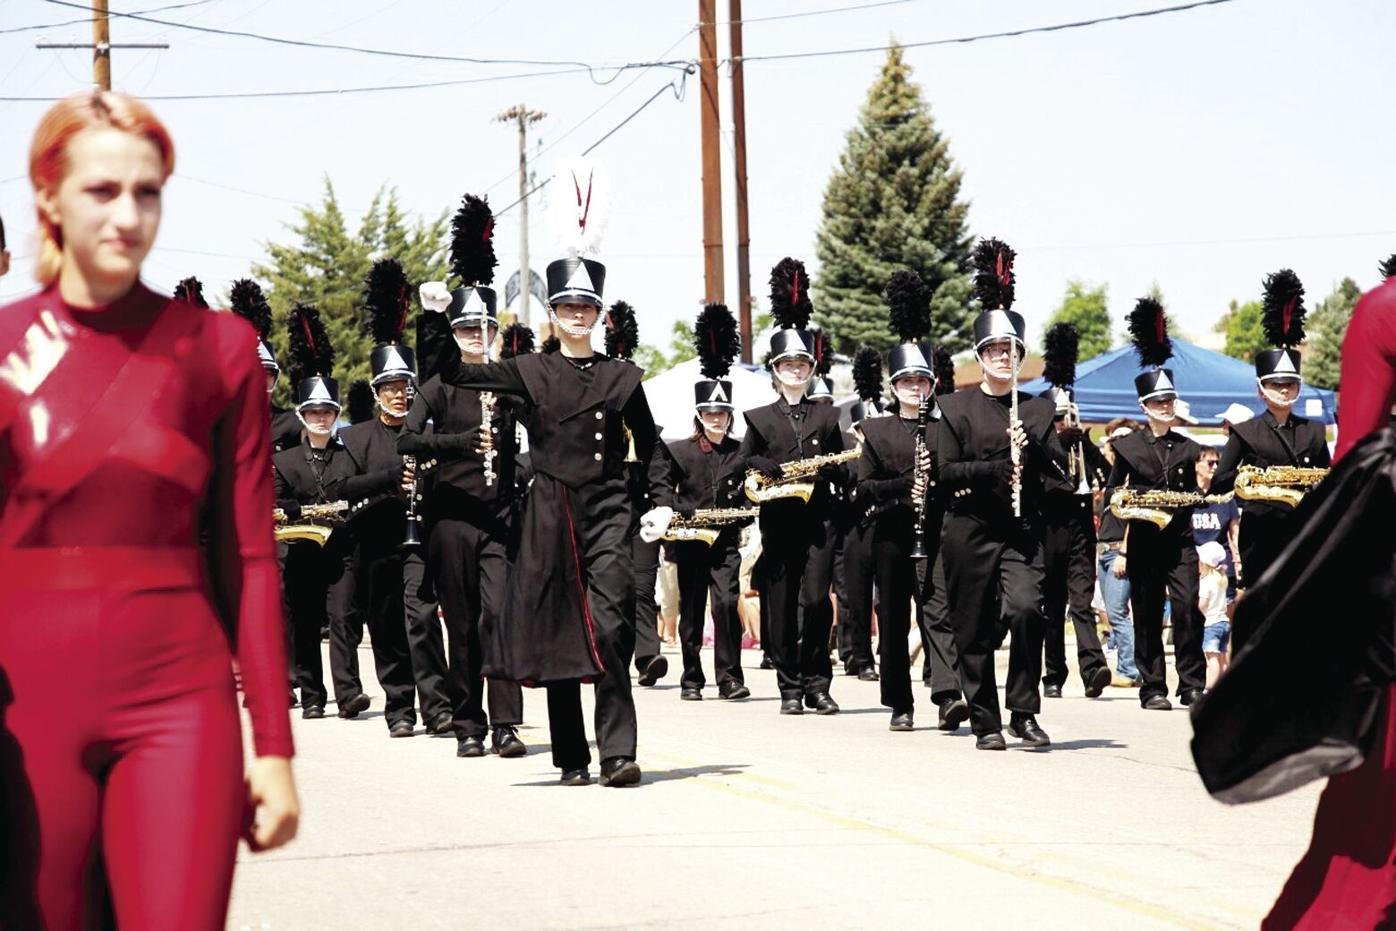 ISD 728 marching band comes together through the power of music